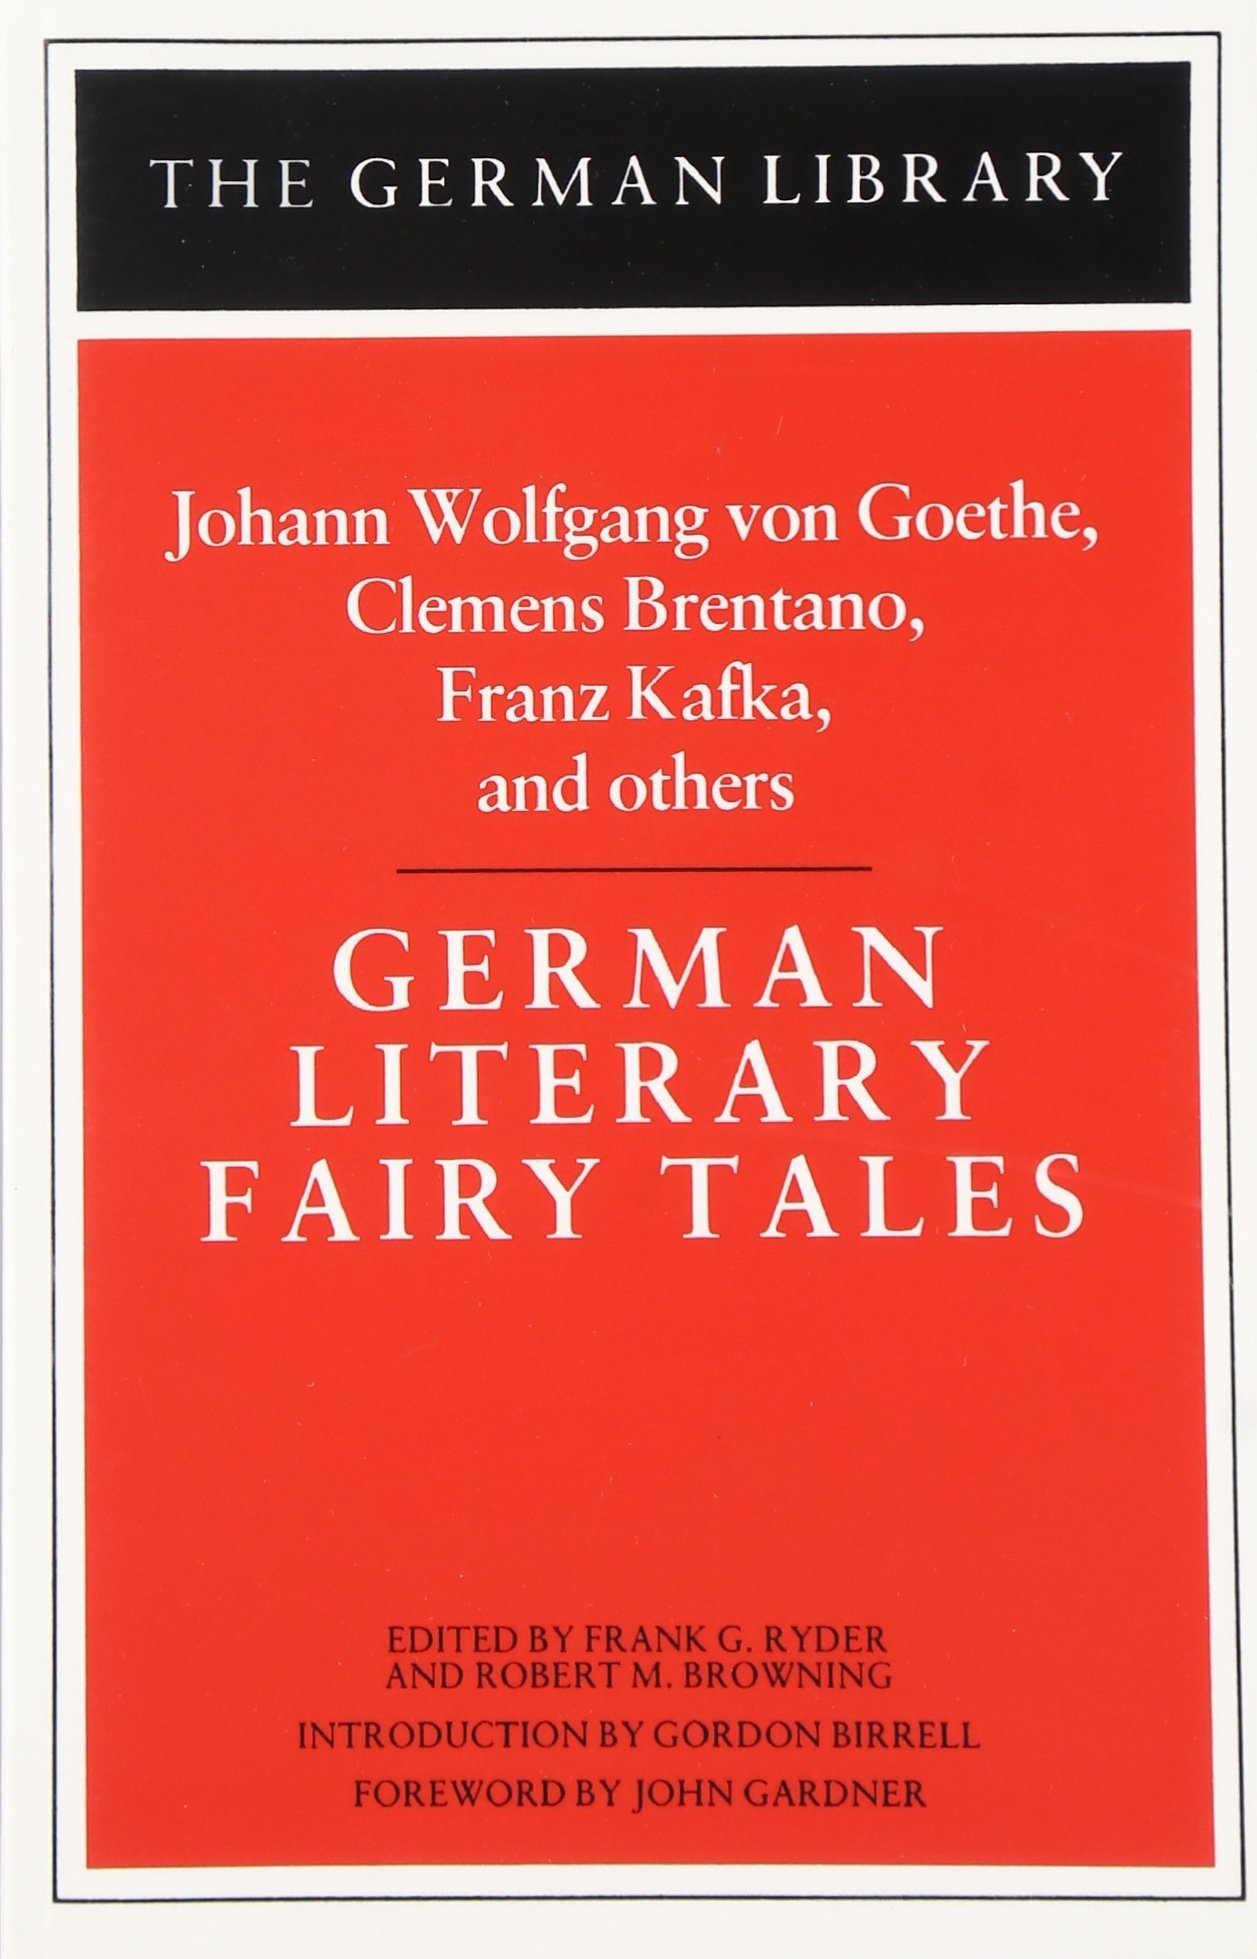 Essay On Health And Fitness Amazoncom German Literary Fairy Tales Johann Wolfgang Von Goethe  Clemens Brentano Franz Kafka And Others German Library   Frank G  Persuasive Essay Samples High School also Essay English Example Amazoncom German Literary Fairy Tales Johann Wolfgang Von Goethe  Help With Fractions